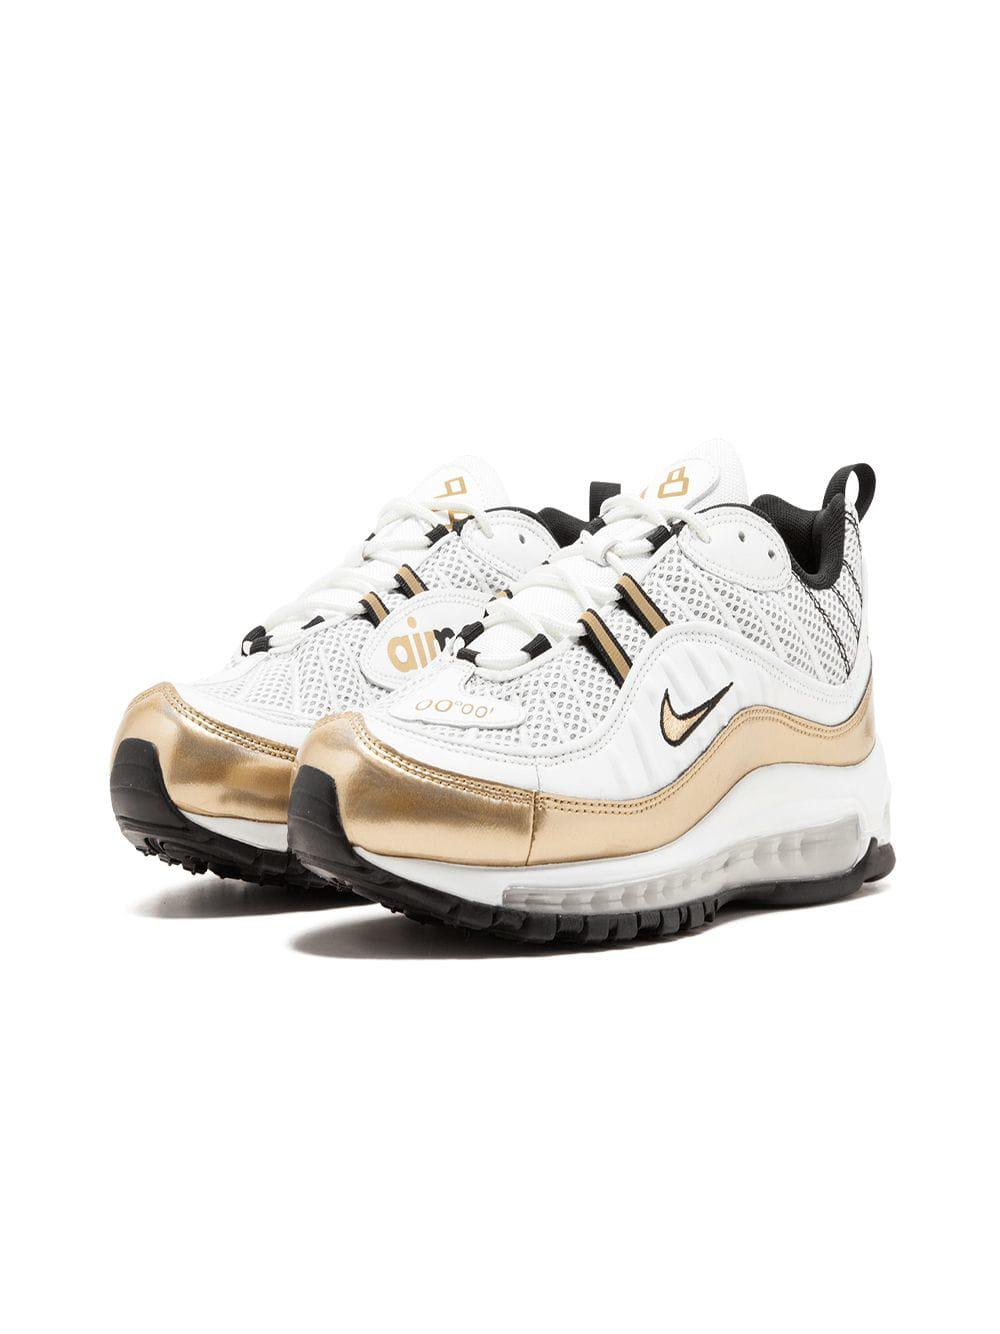 6144a0d0bfb8 Lyst - Nike Air Max 98 Uk Sneakers in White for Men